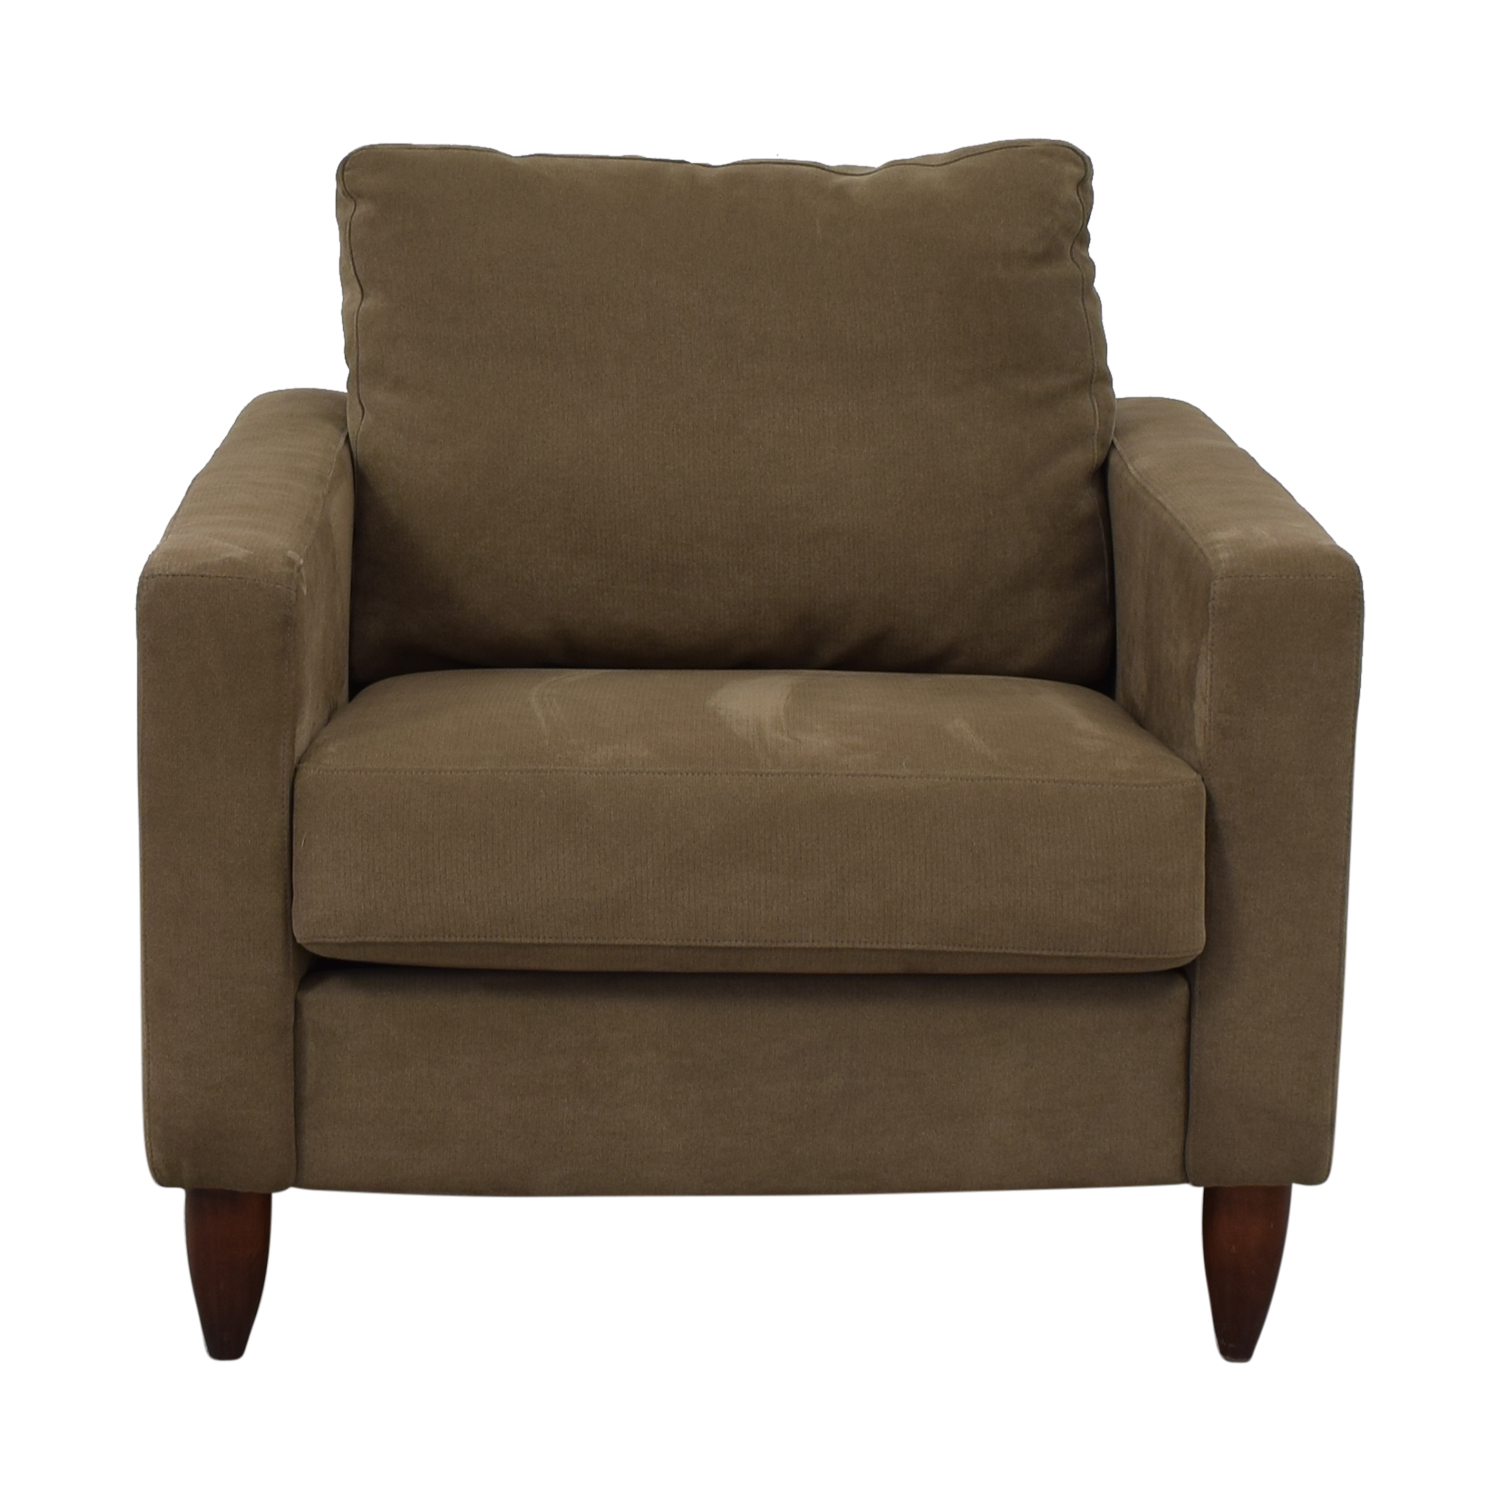 Crate & Barrel Crate & Barrel Accent Chair brown